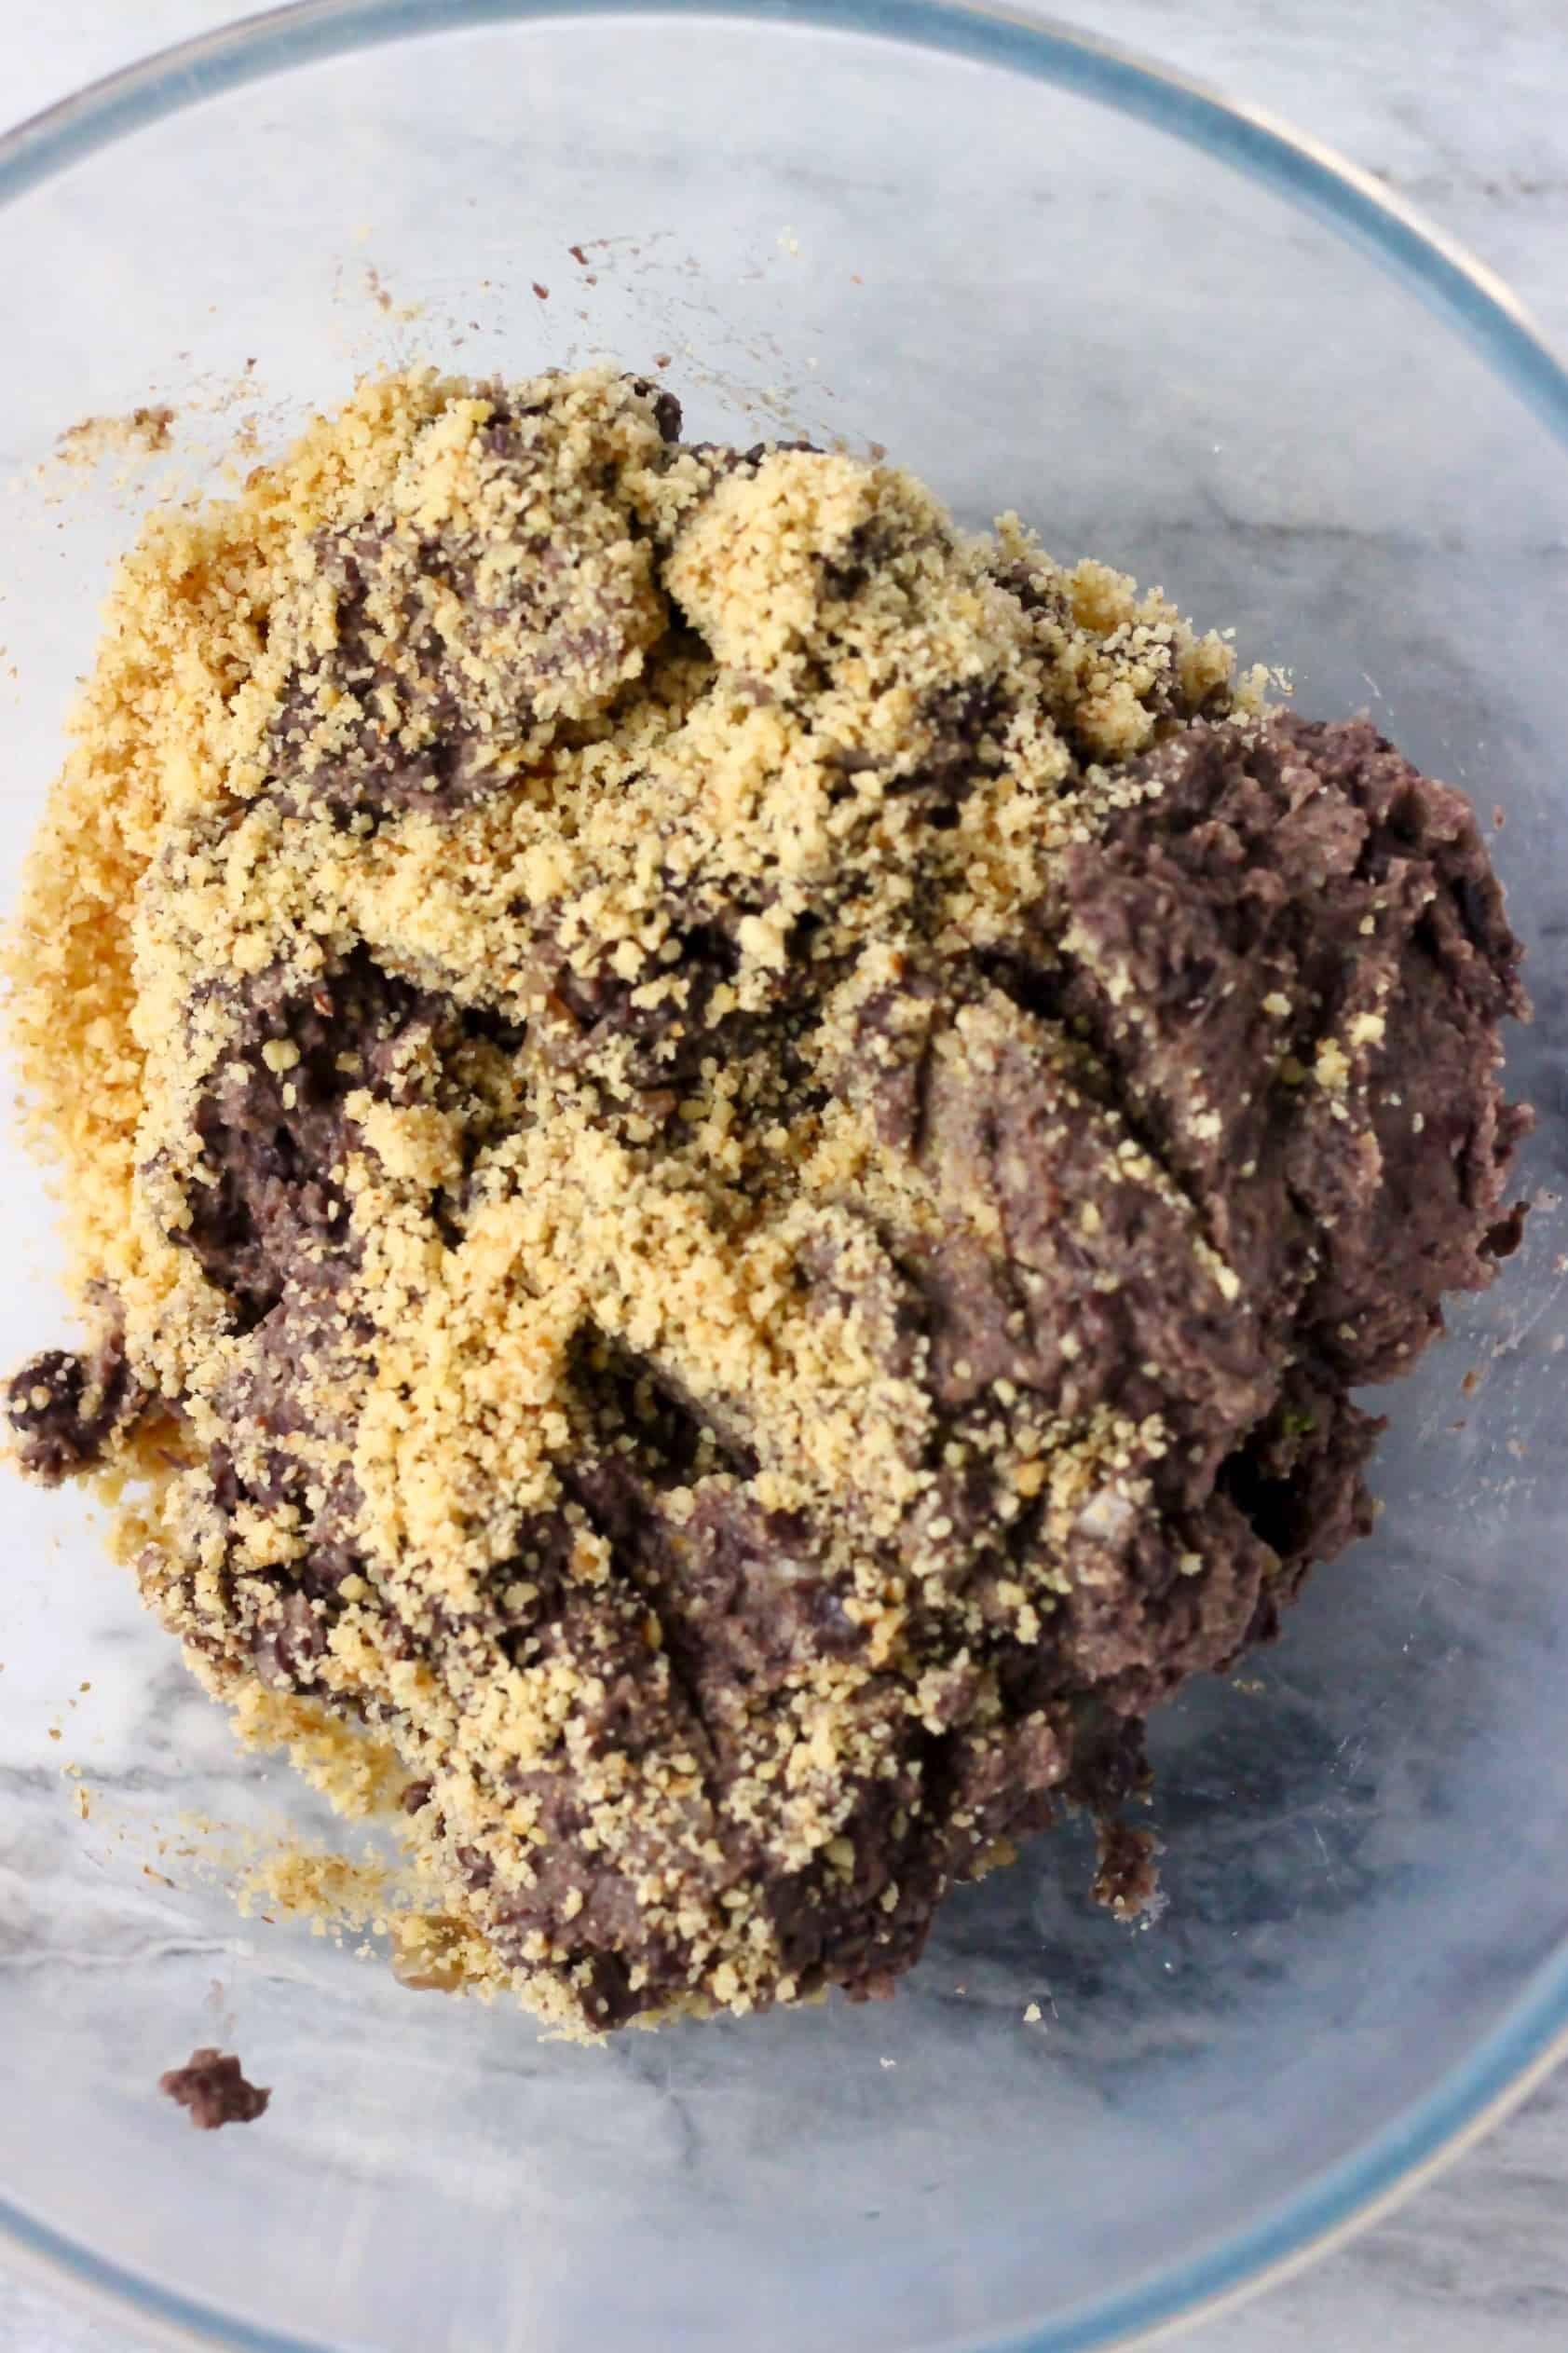 Vegan black bean meatloaf mixture with ground walnuts in a glass mixing bowl